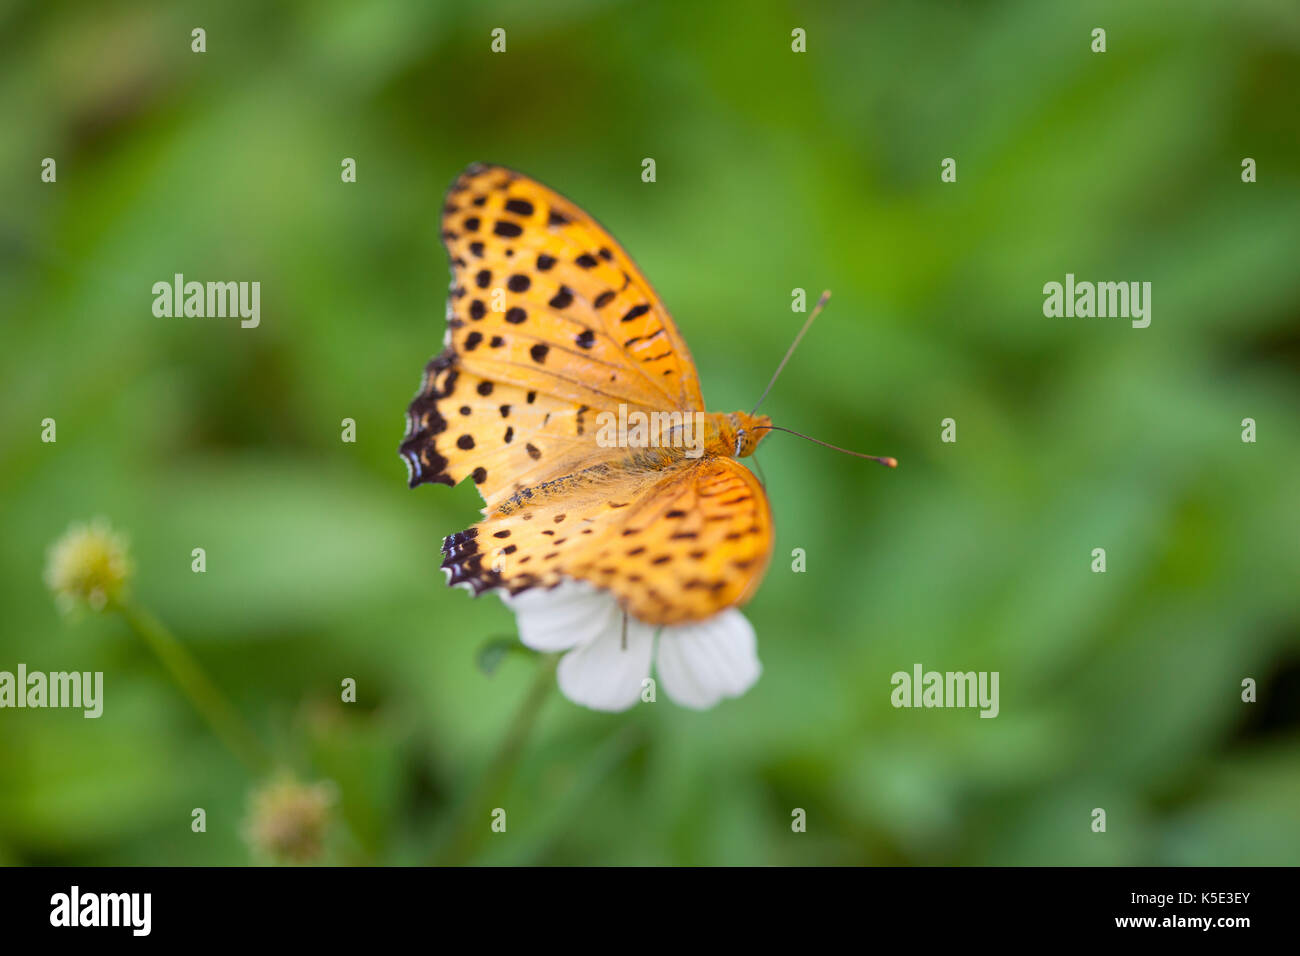 Indian Fritillary Butterfly, Argynnis hyperbius, sitting on a flower. Selective focus on centre of insect. - Stock Image